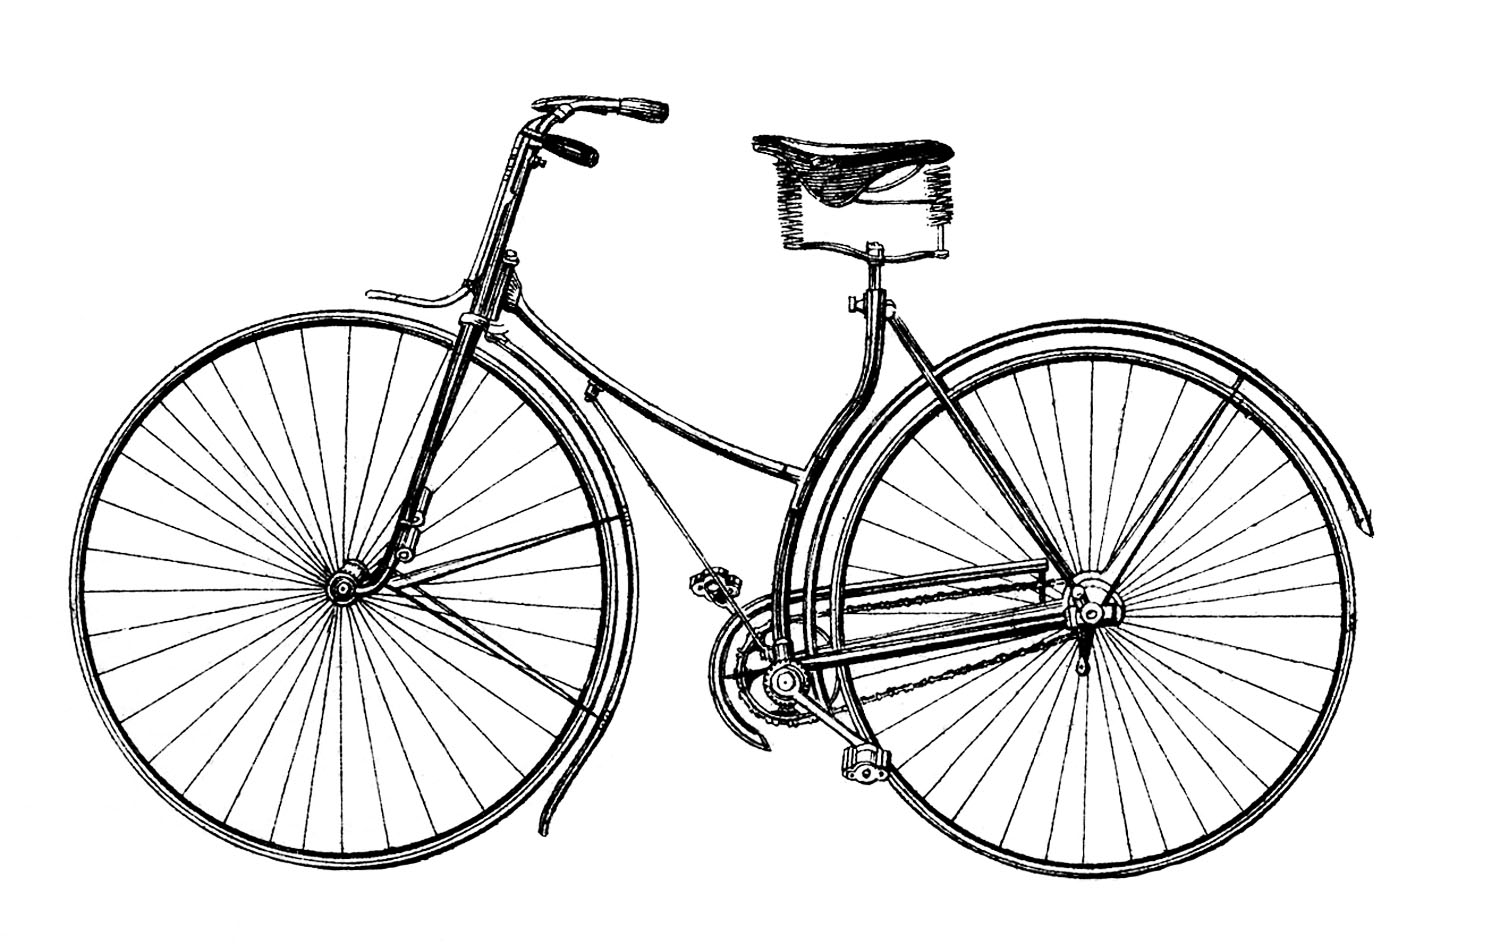 Free Bicycle Graphics, Download Free Clip Art, Free Clip Art.